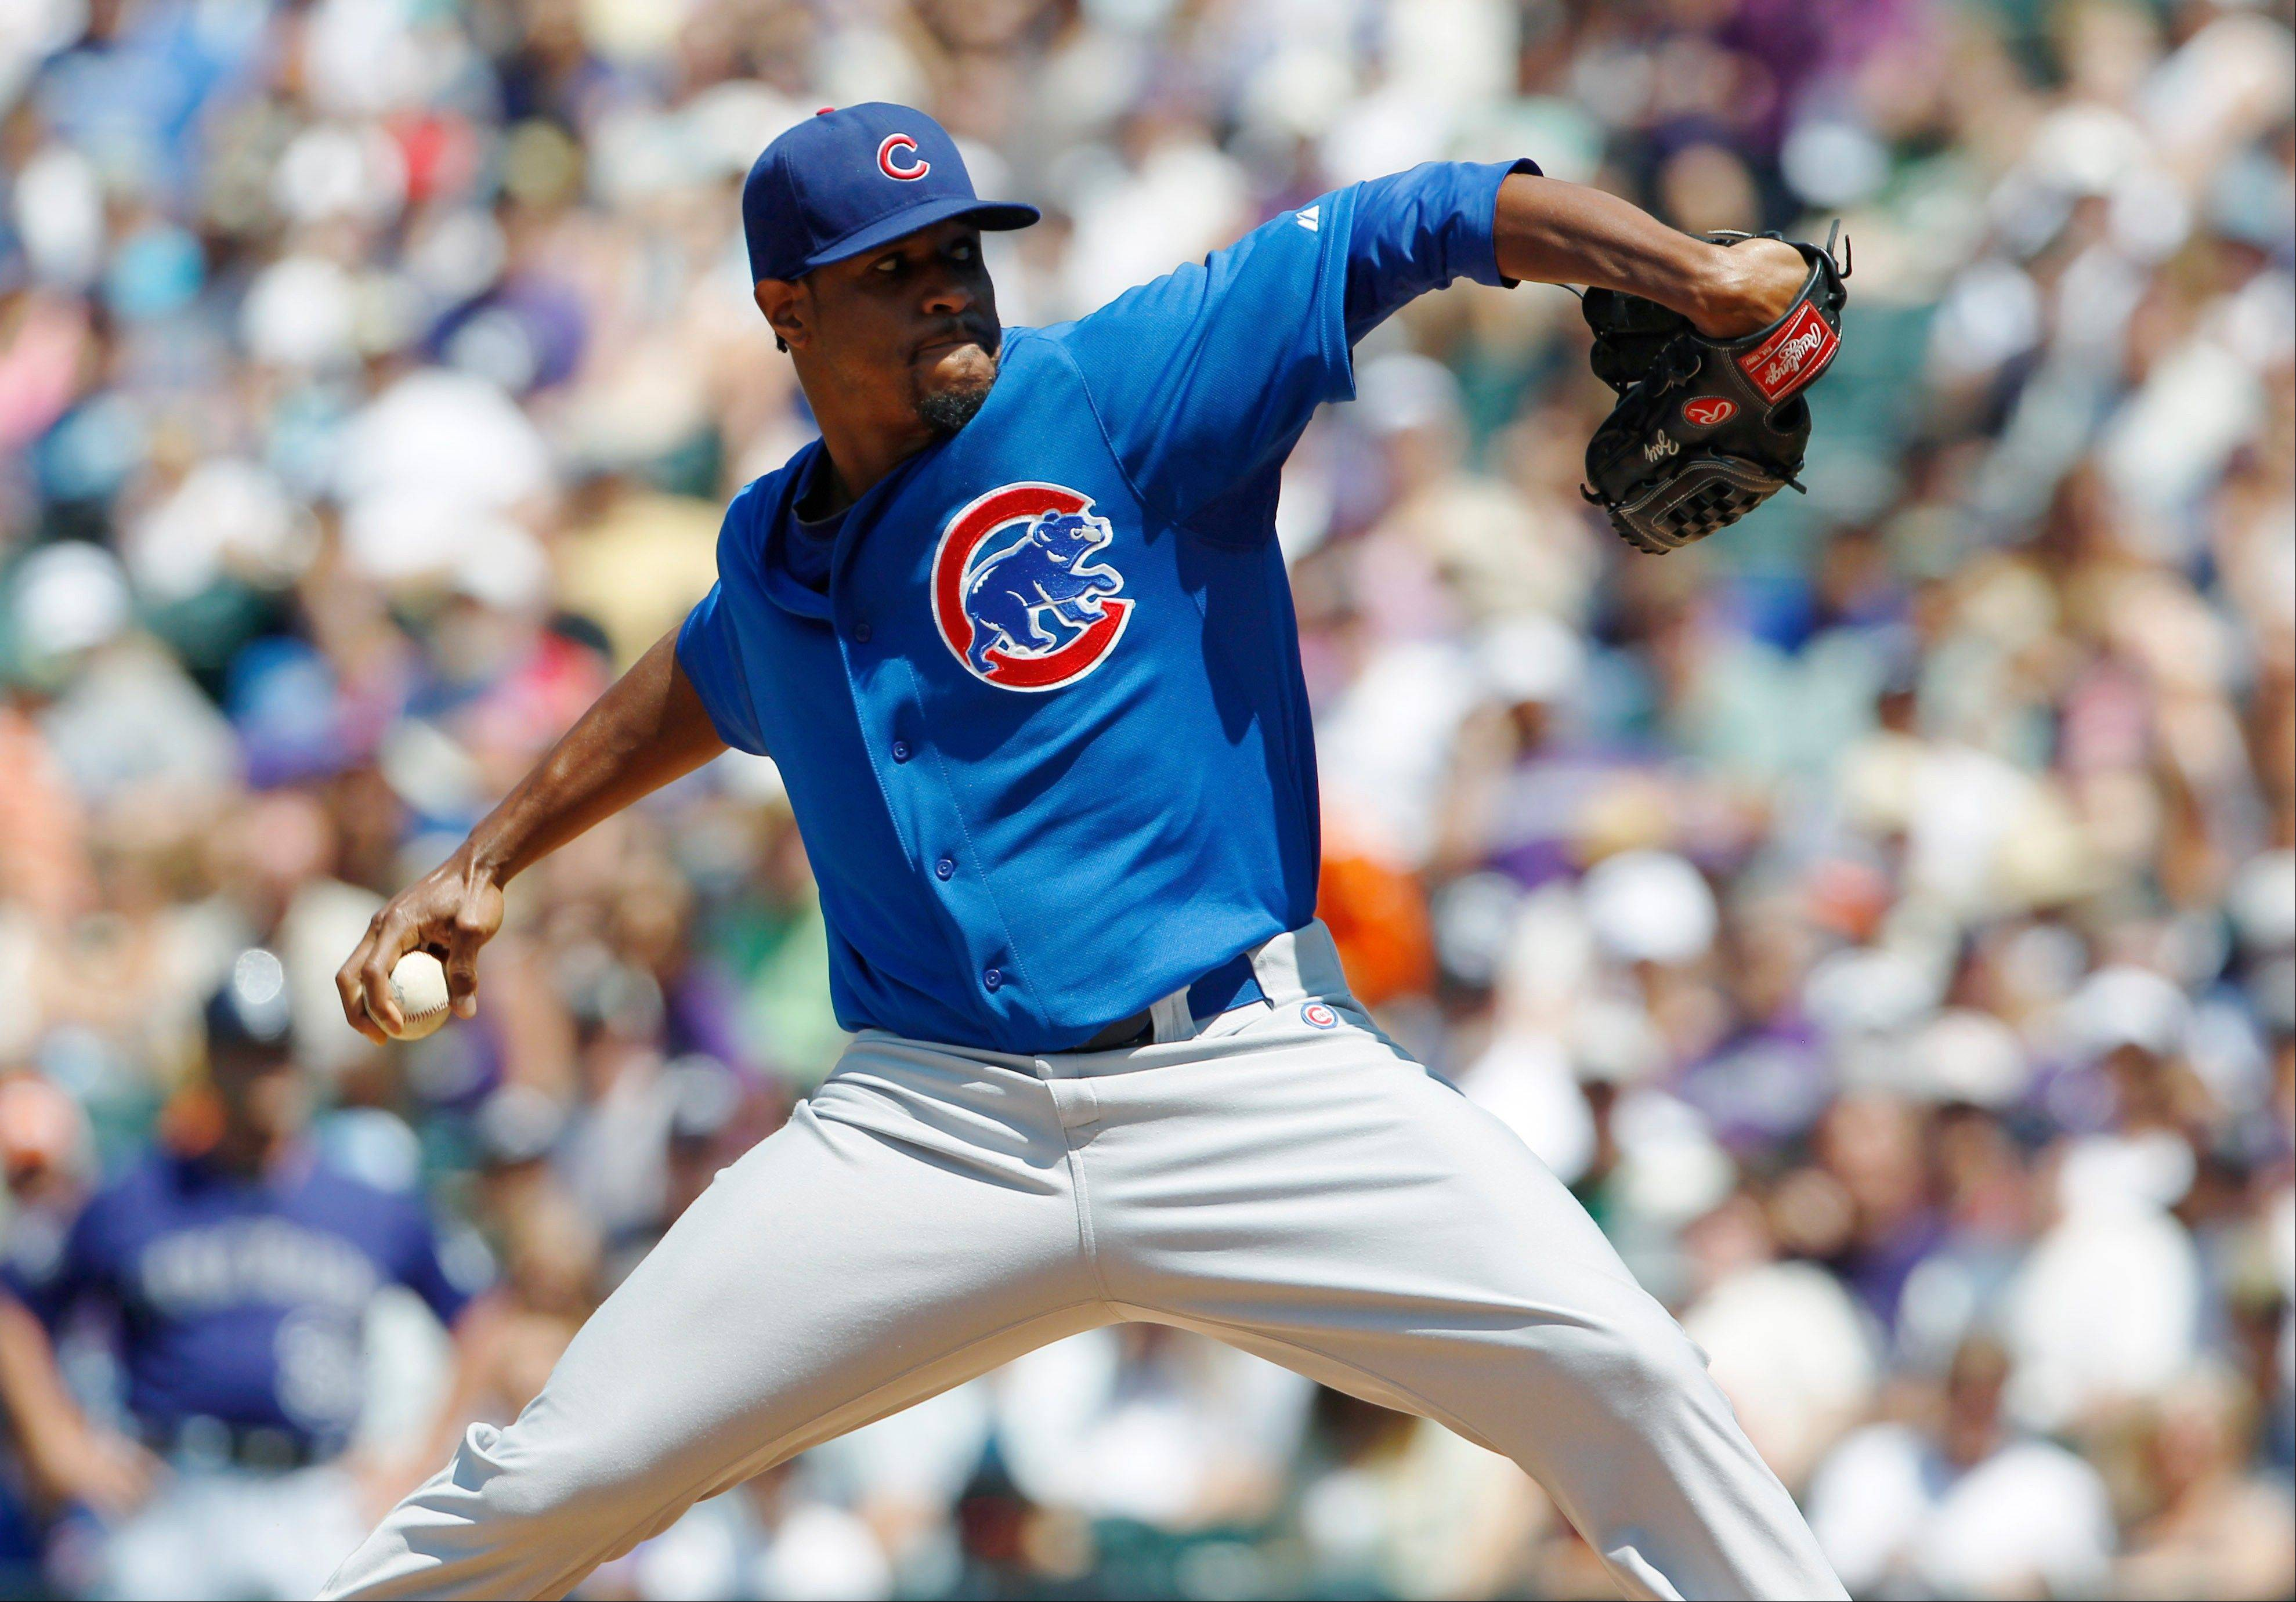 Cubs starting pitcher Edwin Jackson works against the Colorado Rockies in the first inning of Sunday�s game in Denver.